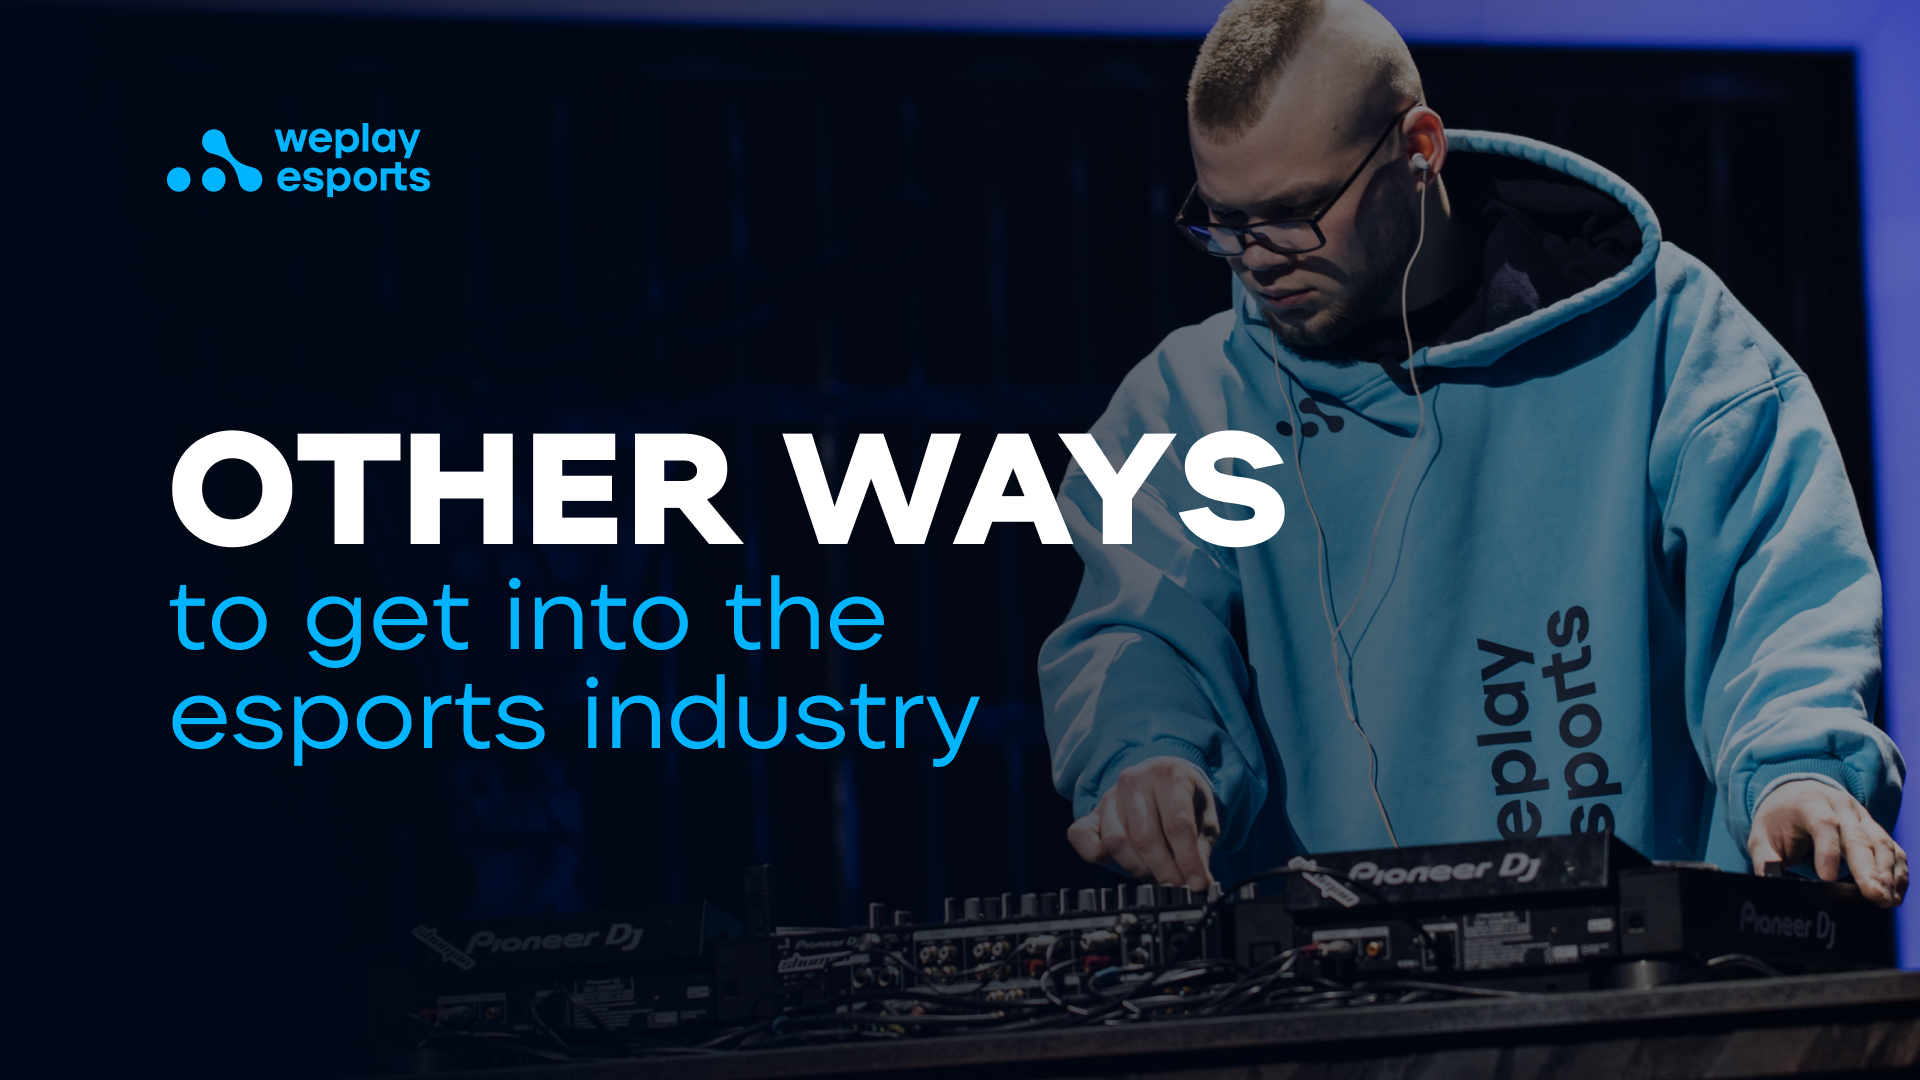 Other ways to get into the esports industry